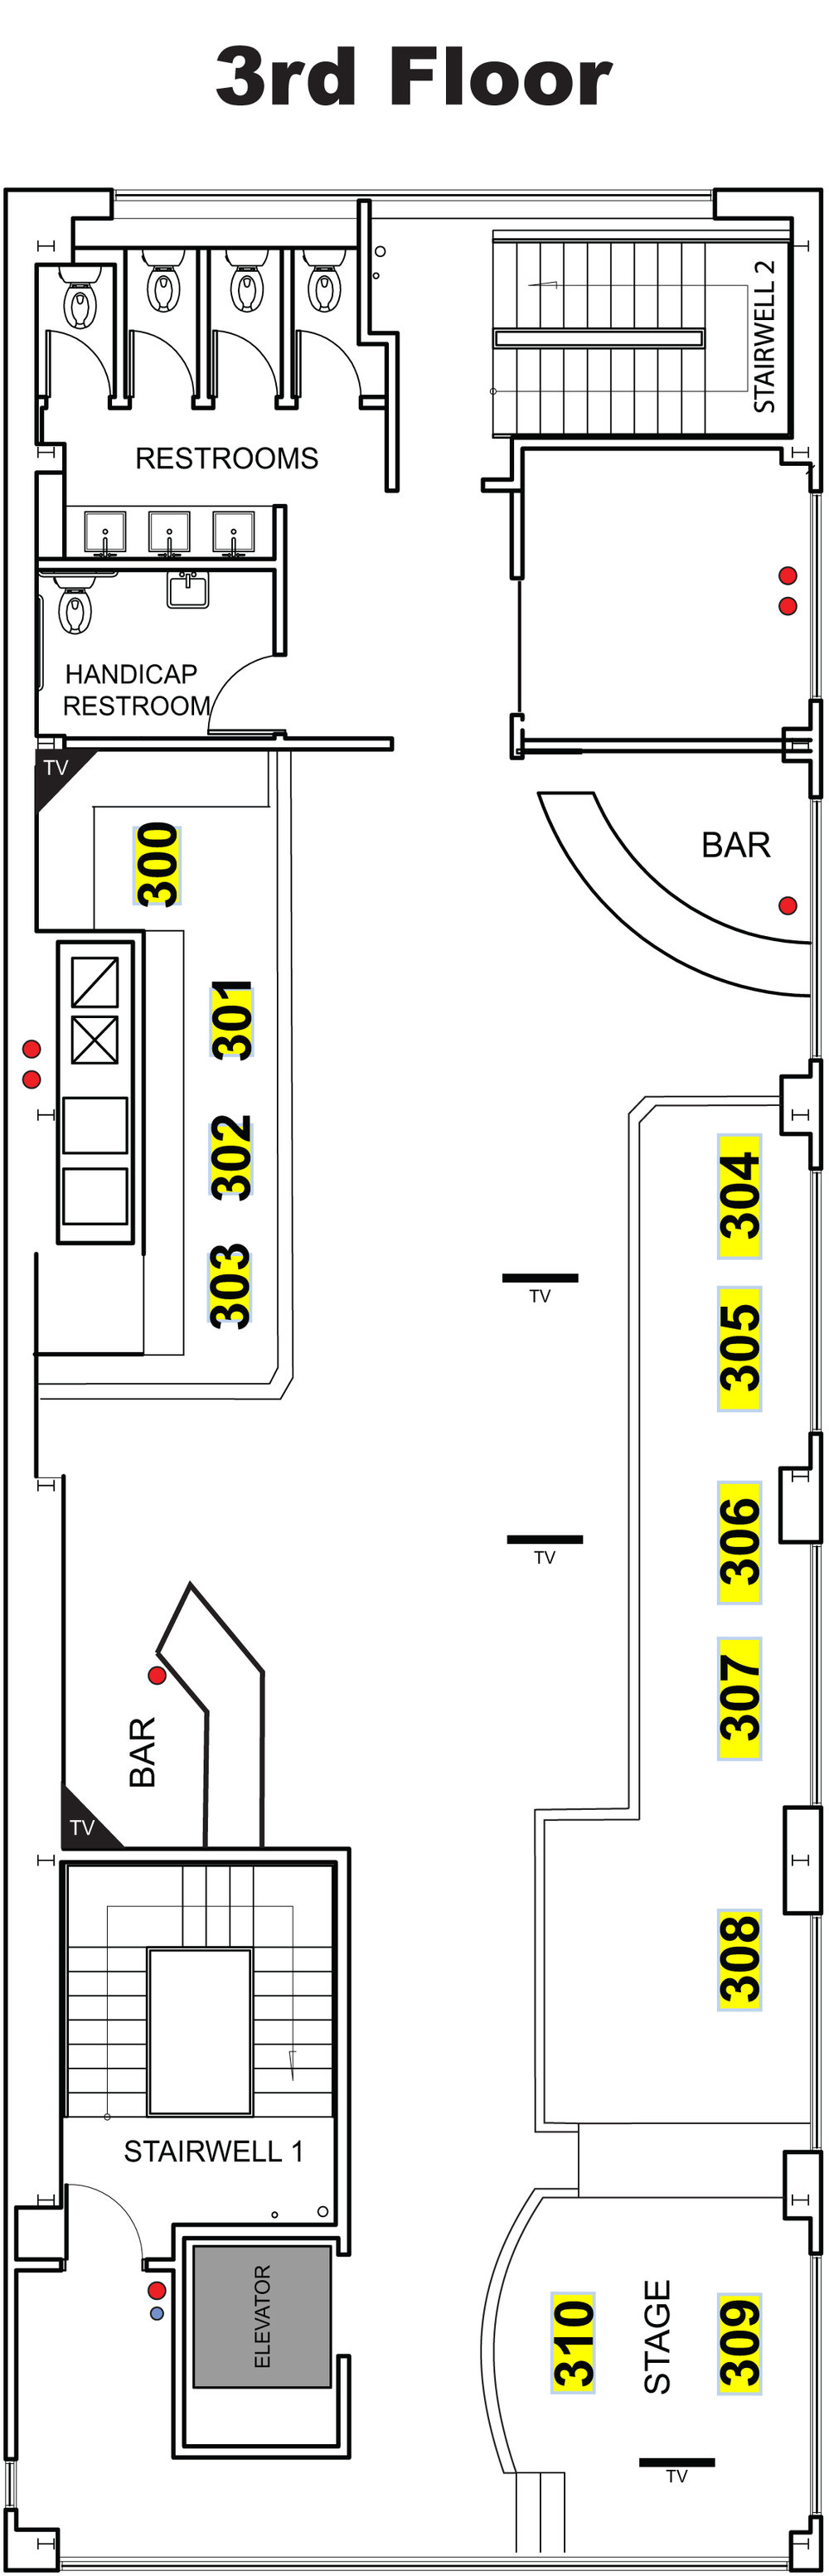 Bottle Service Floor Plan June 2018 v2-3.jpg